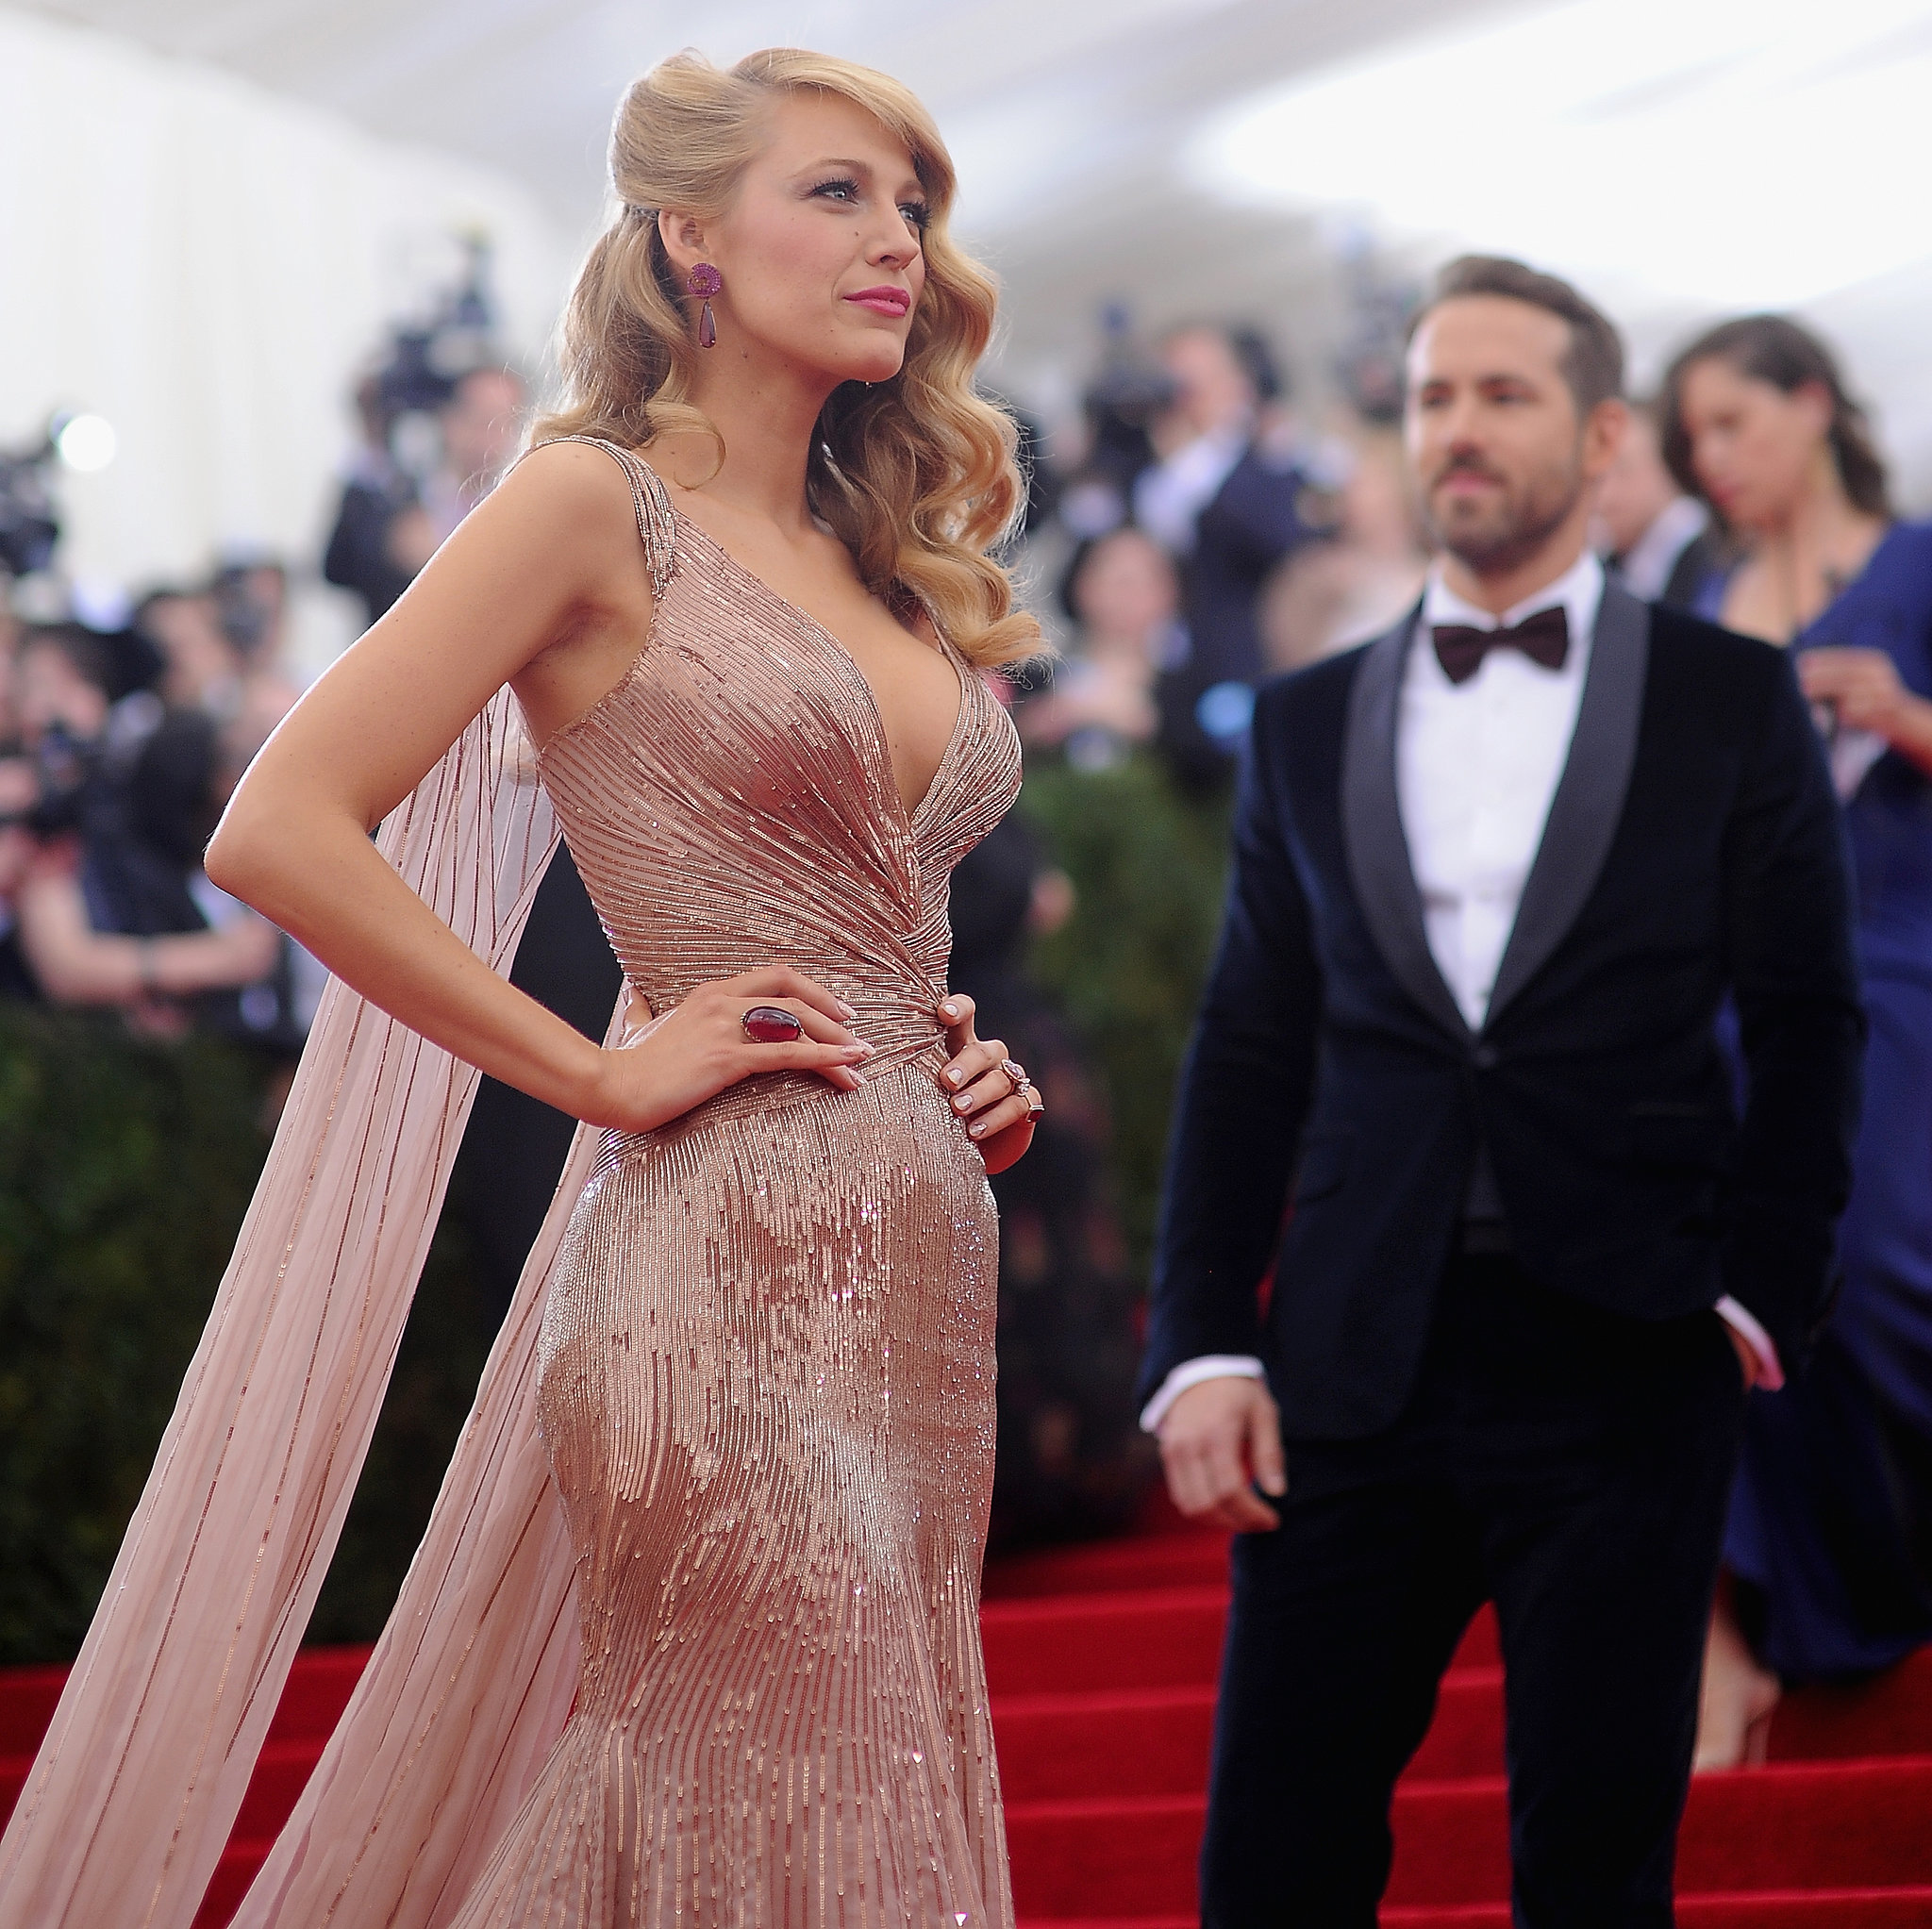 Ryan Reynolds patiently waited for his wife, Blake Lively, as the cameras flashed.